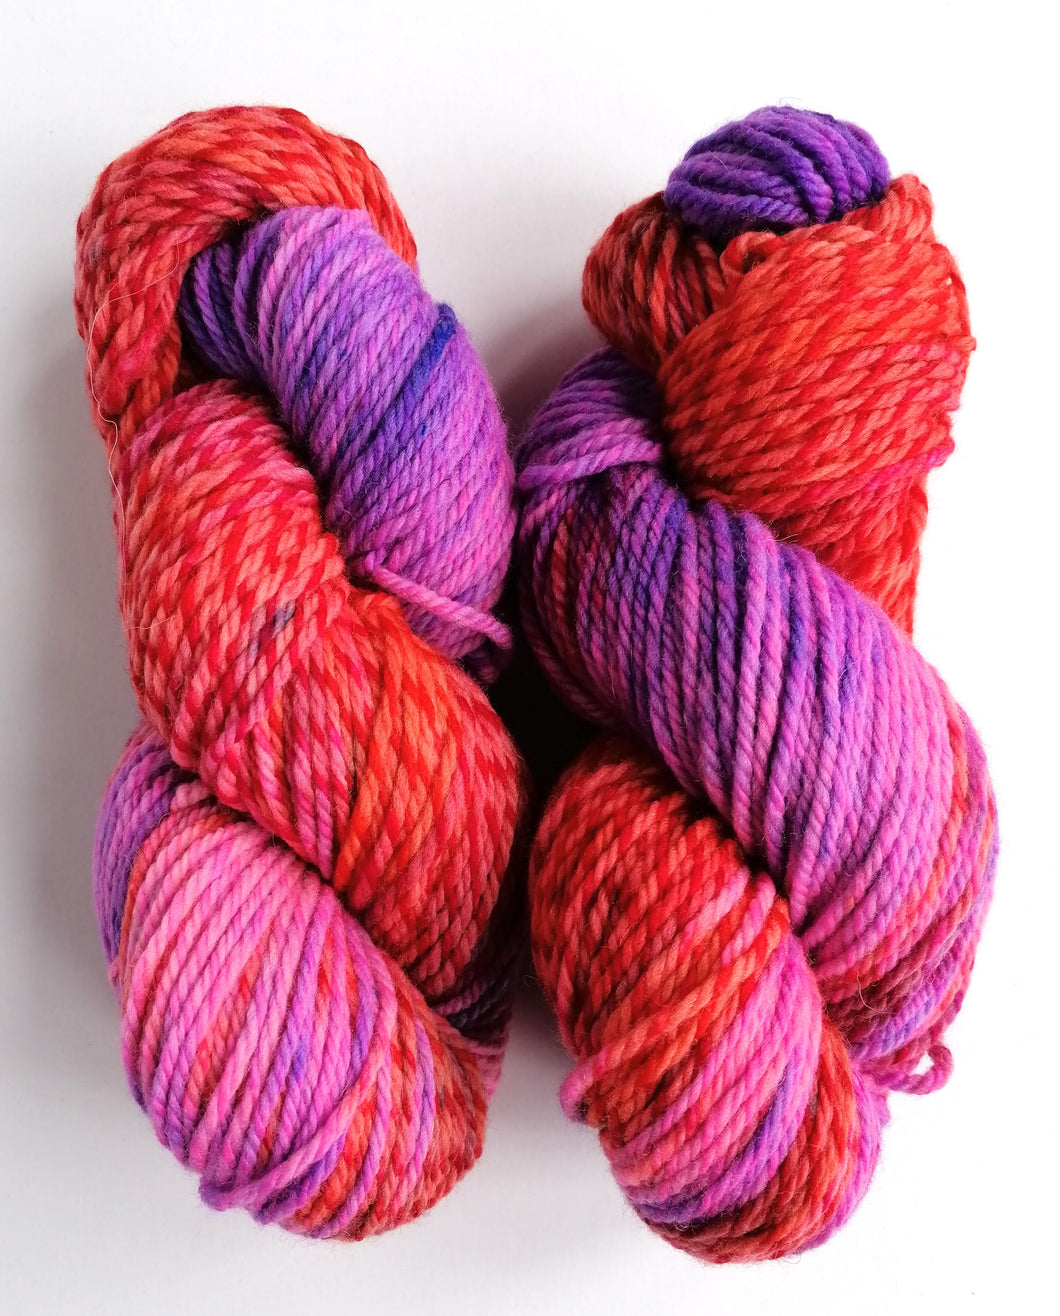 SIN BIN pink, purple and red merino.